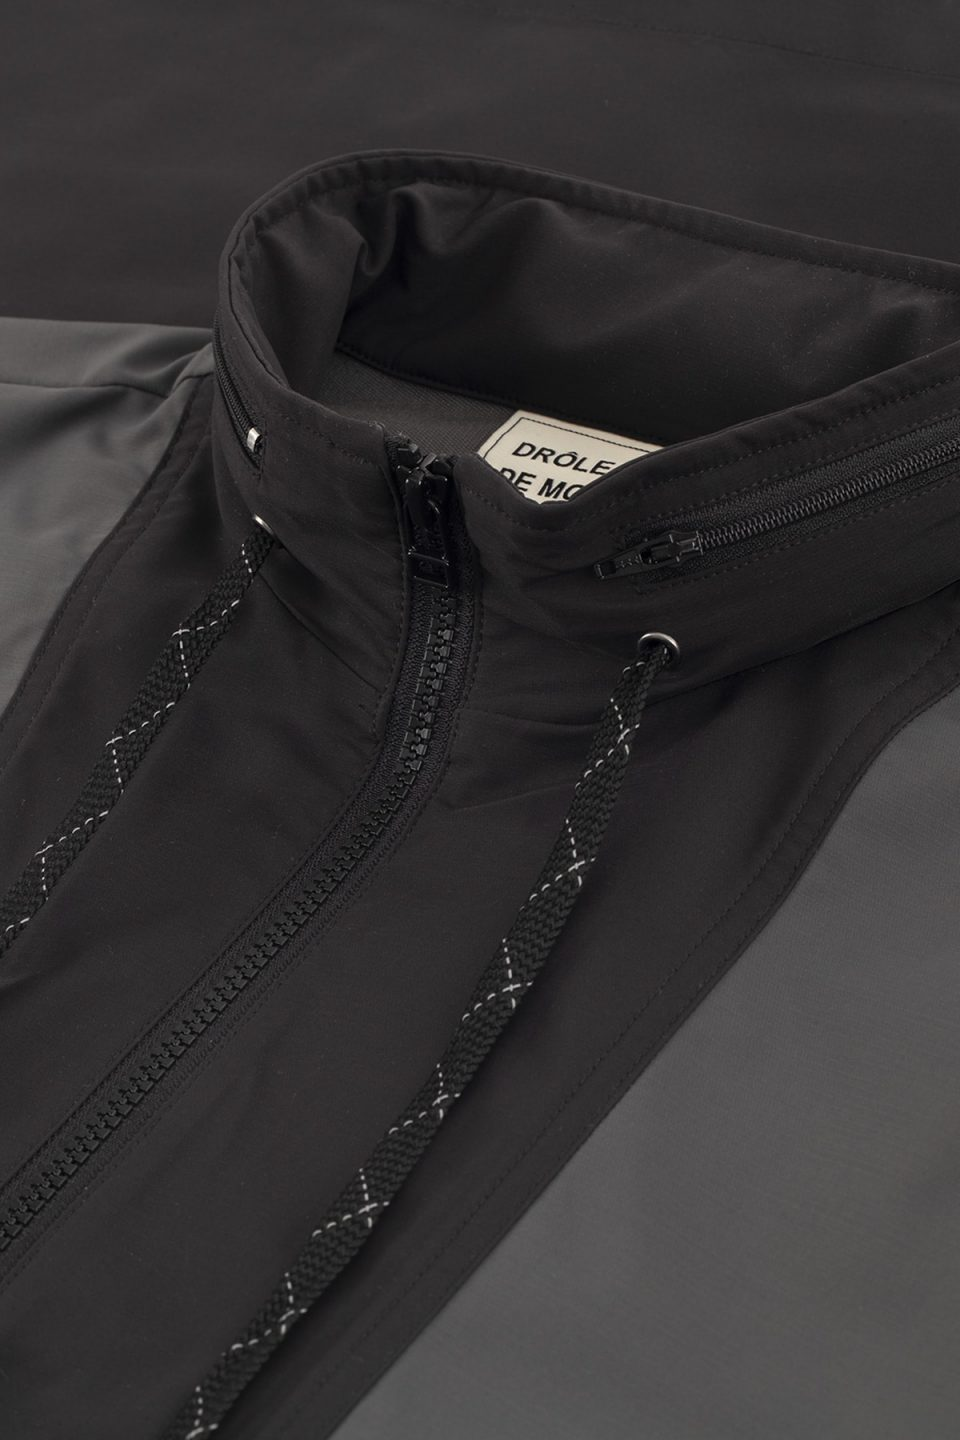 NFPM Windbreaker Jacket